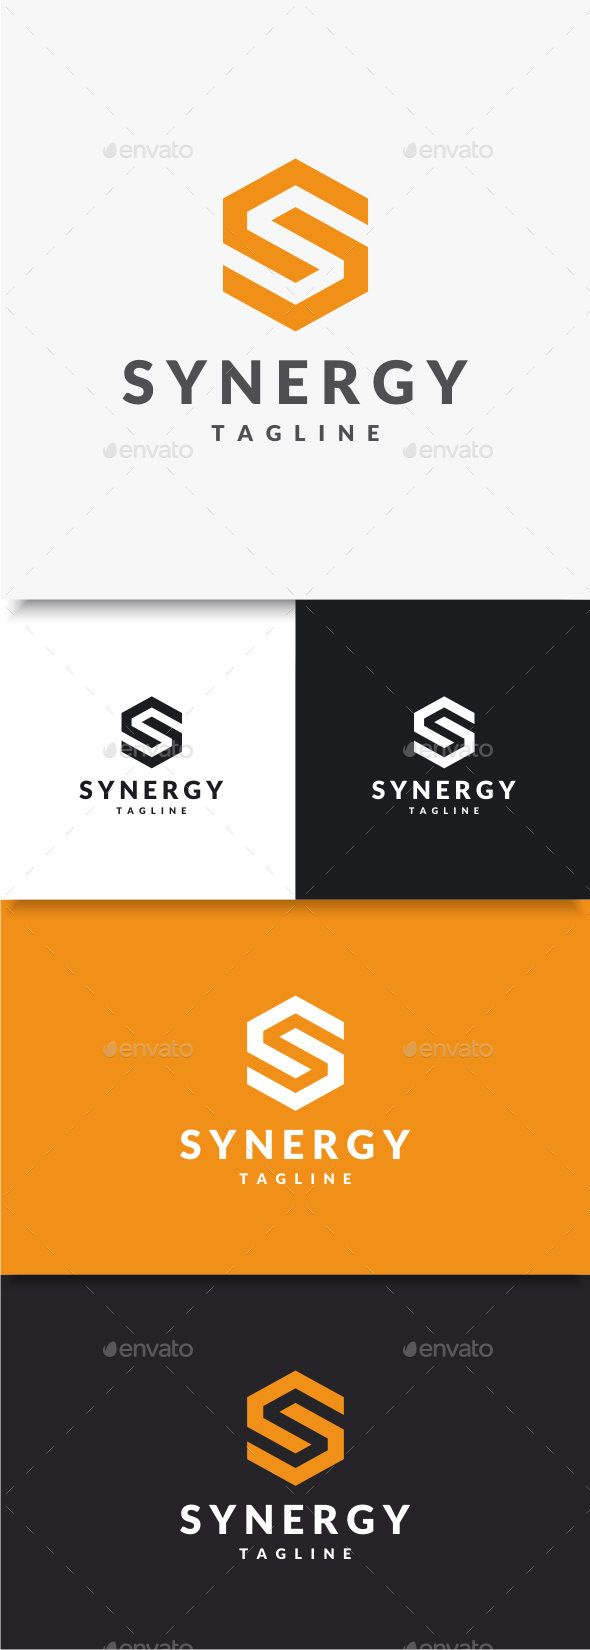 best 25 s logo ideas on pinterest s logo design s